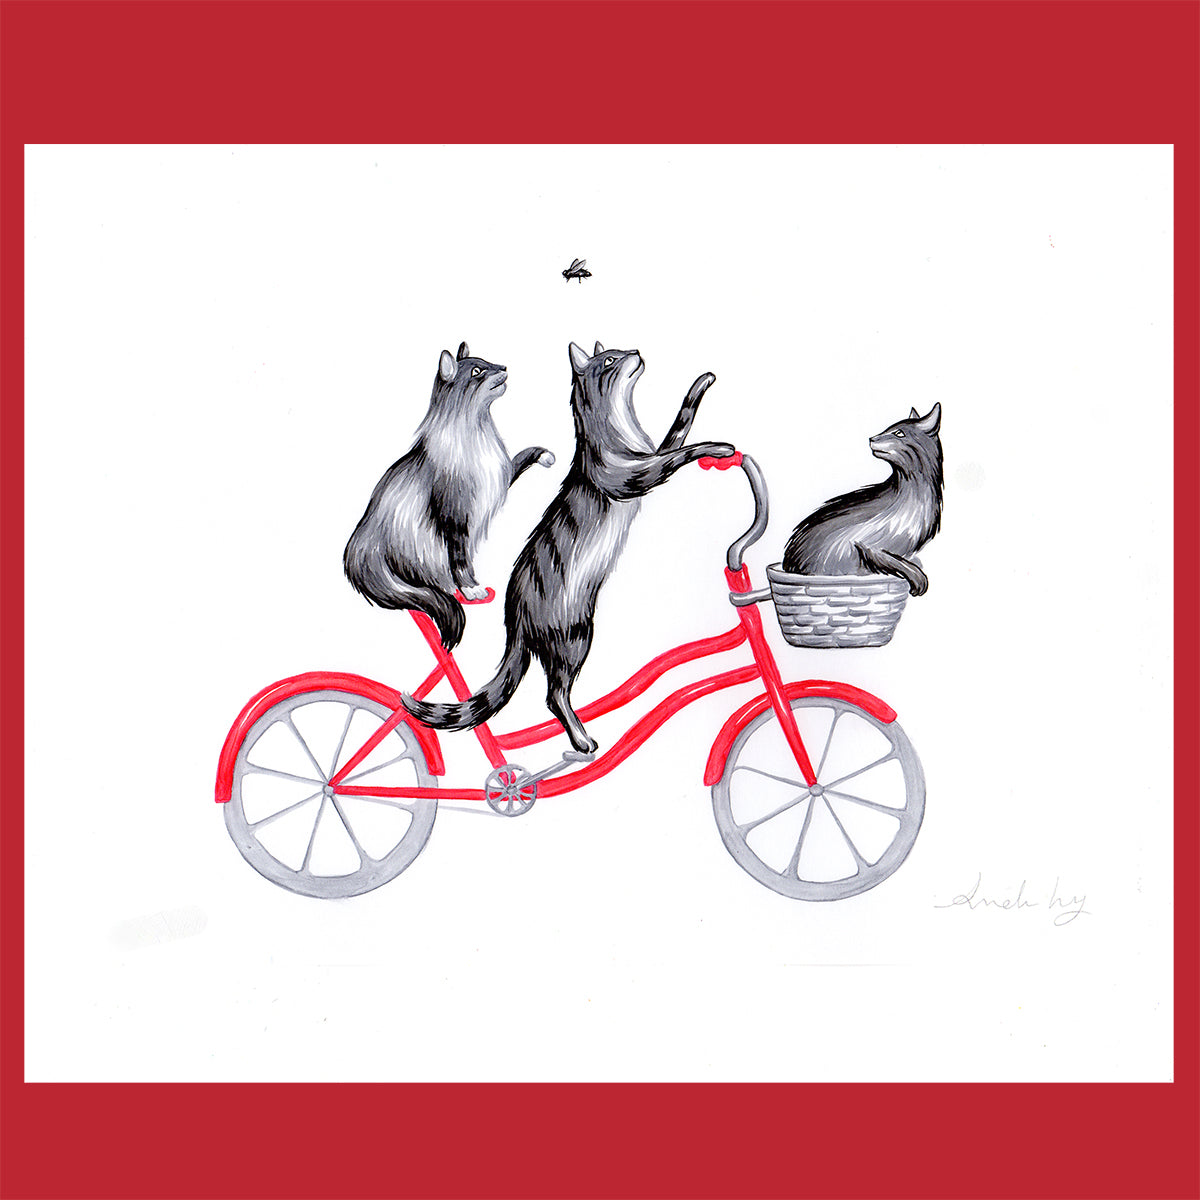 Cats on a bike - Original Artwork, cat illustation, Amelie Legault